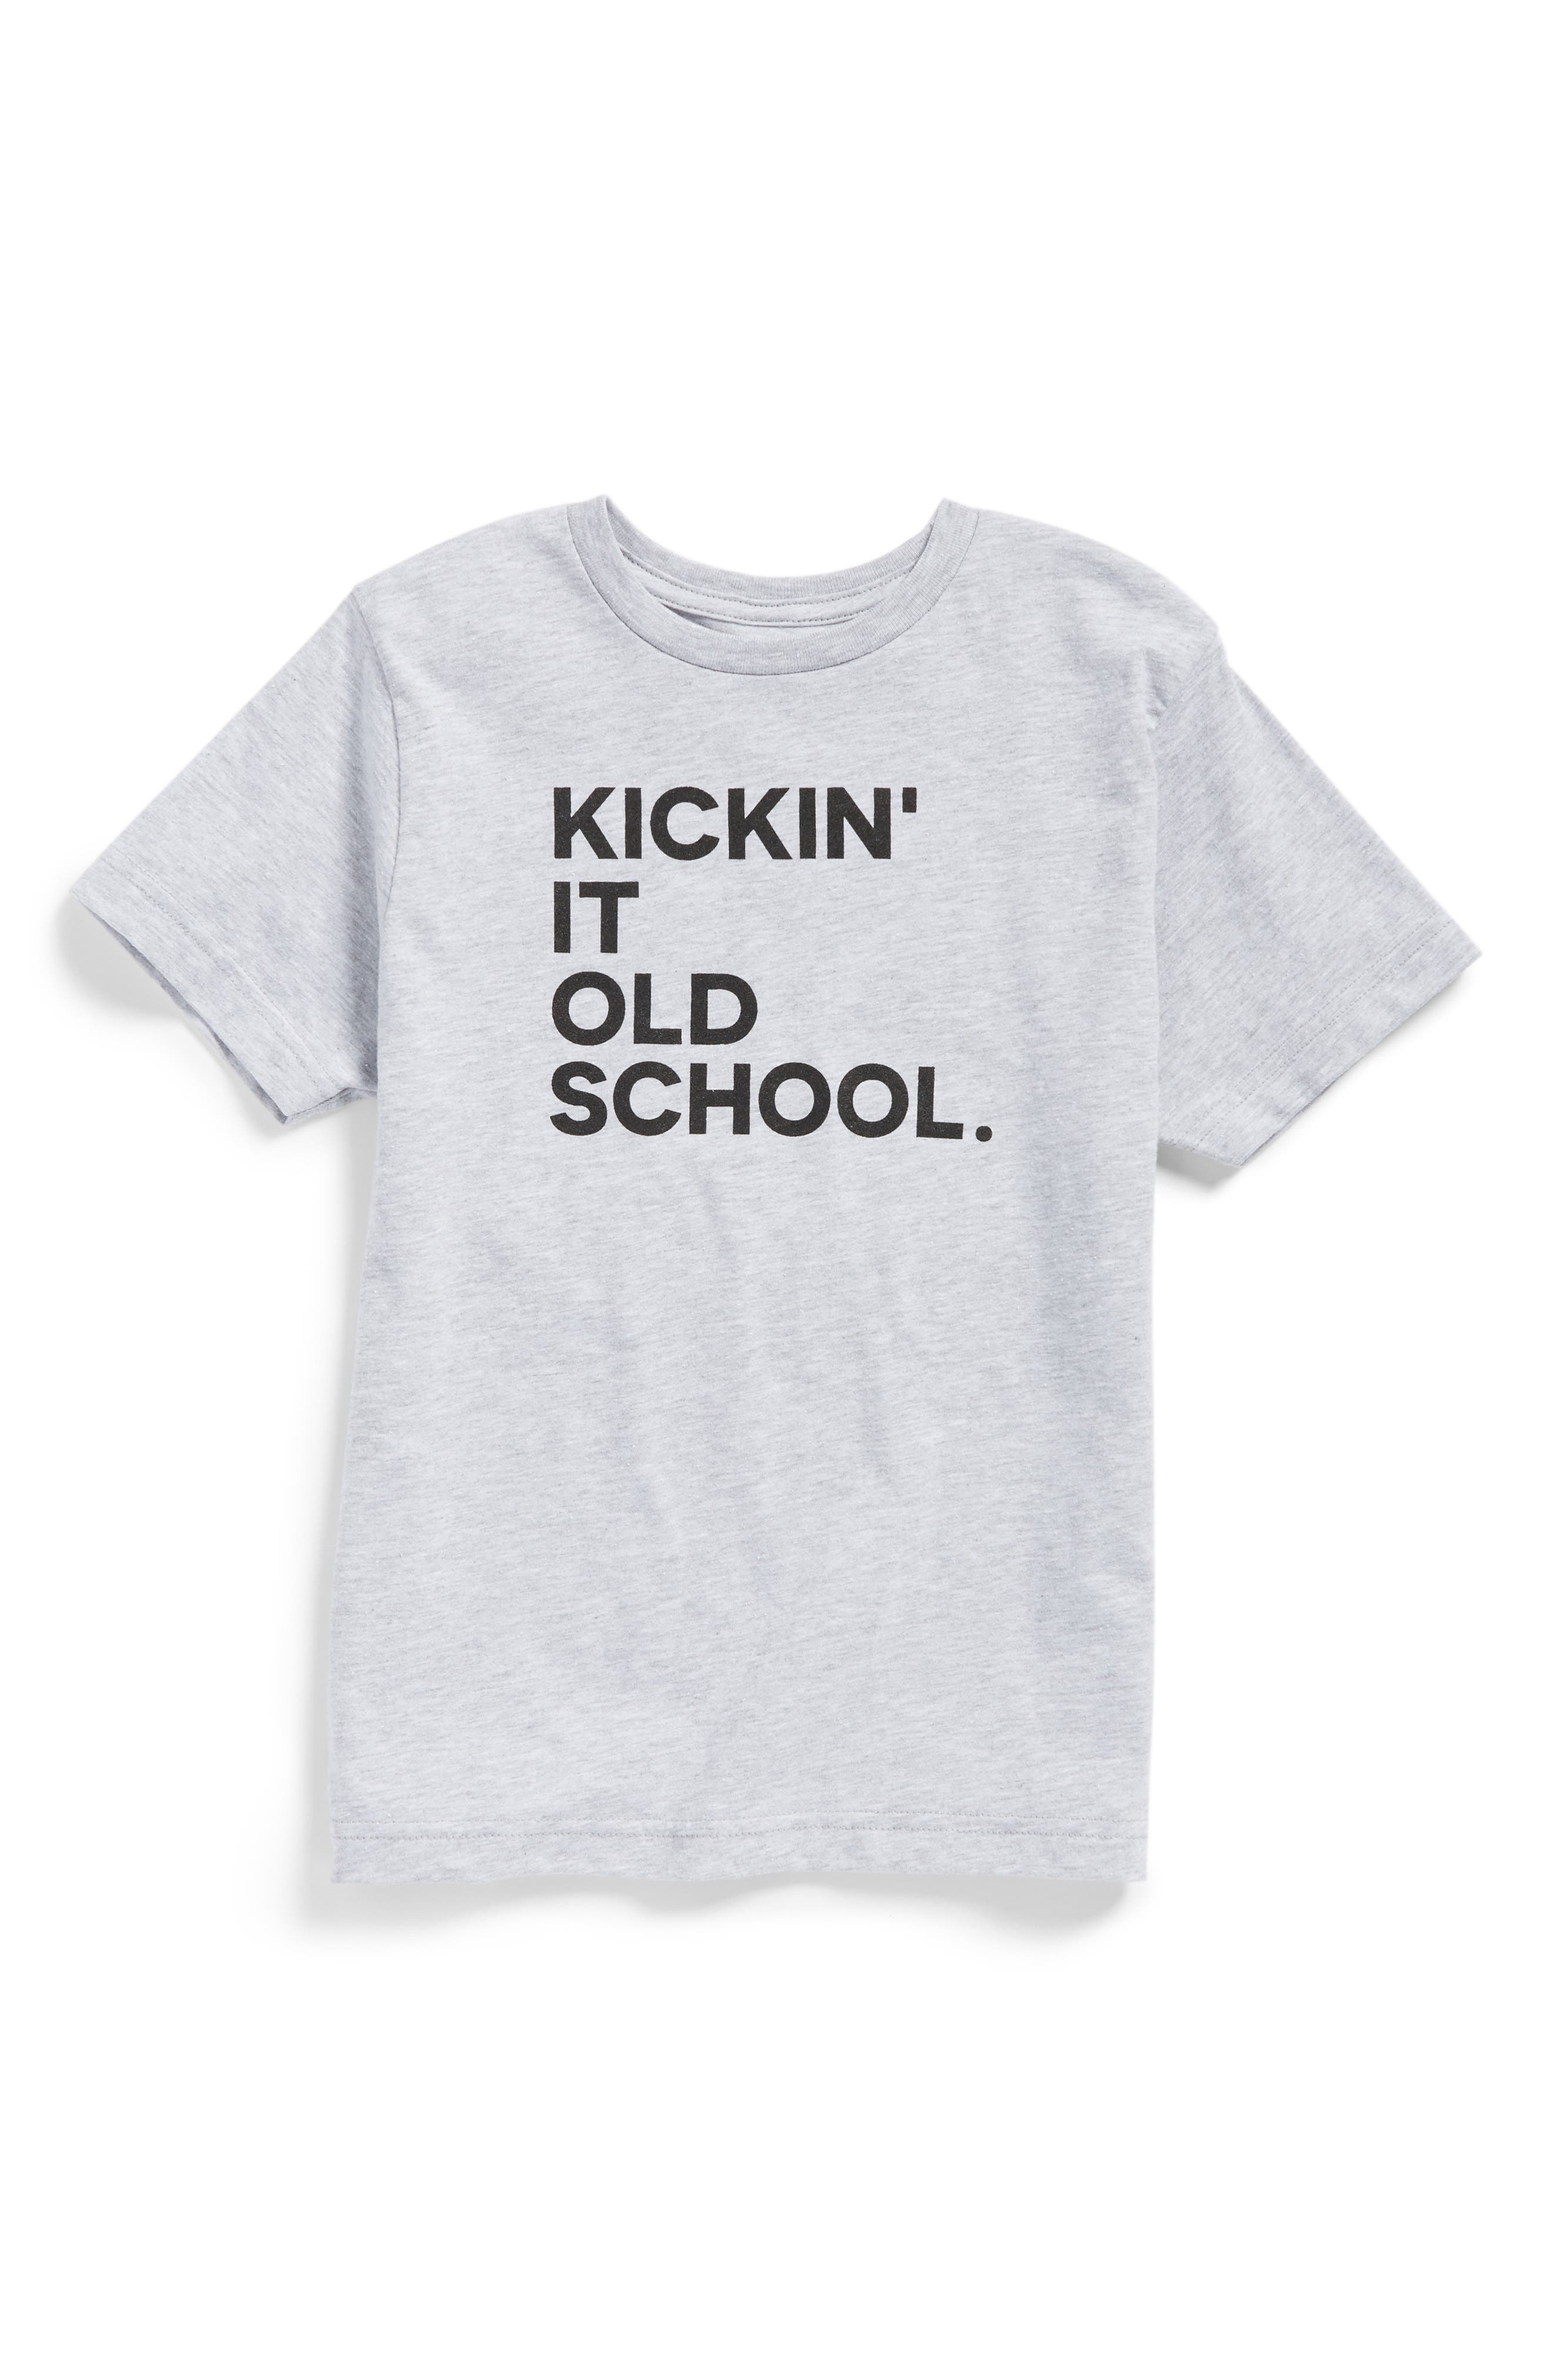 Main Image - Dilascia Kickin' It Old School Graphic T-Shirt (Toddler Boys, Little Boys & Big Boys)